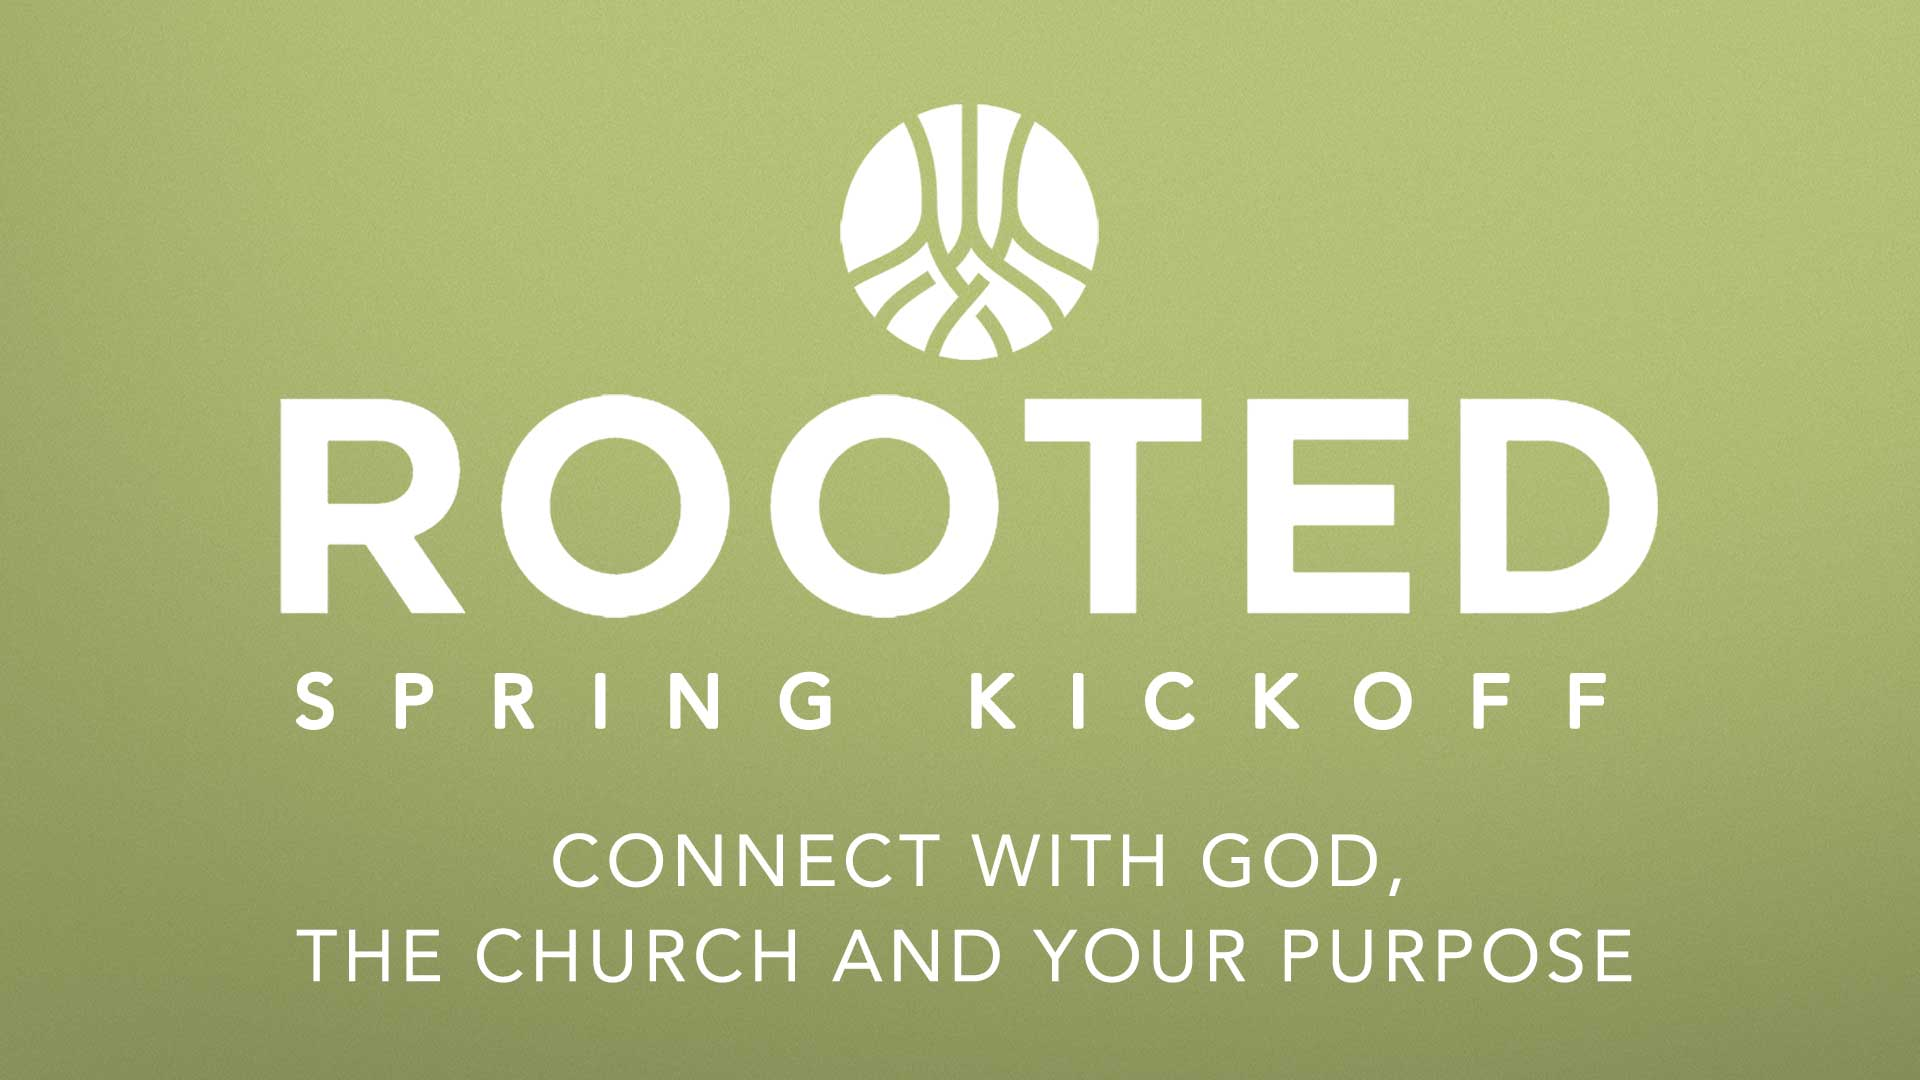 ROOTED-Spring-Kickoff-2021-FB-Event-1920x1080 image